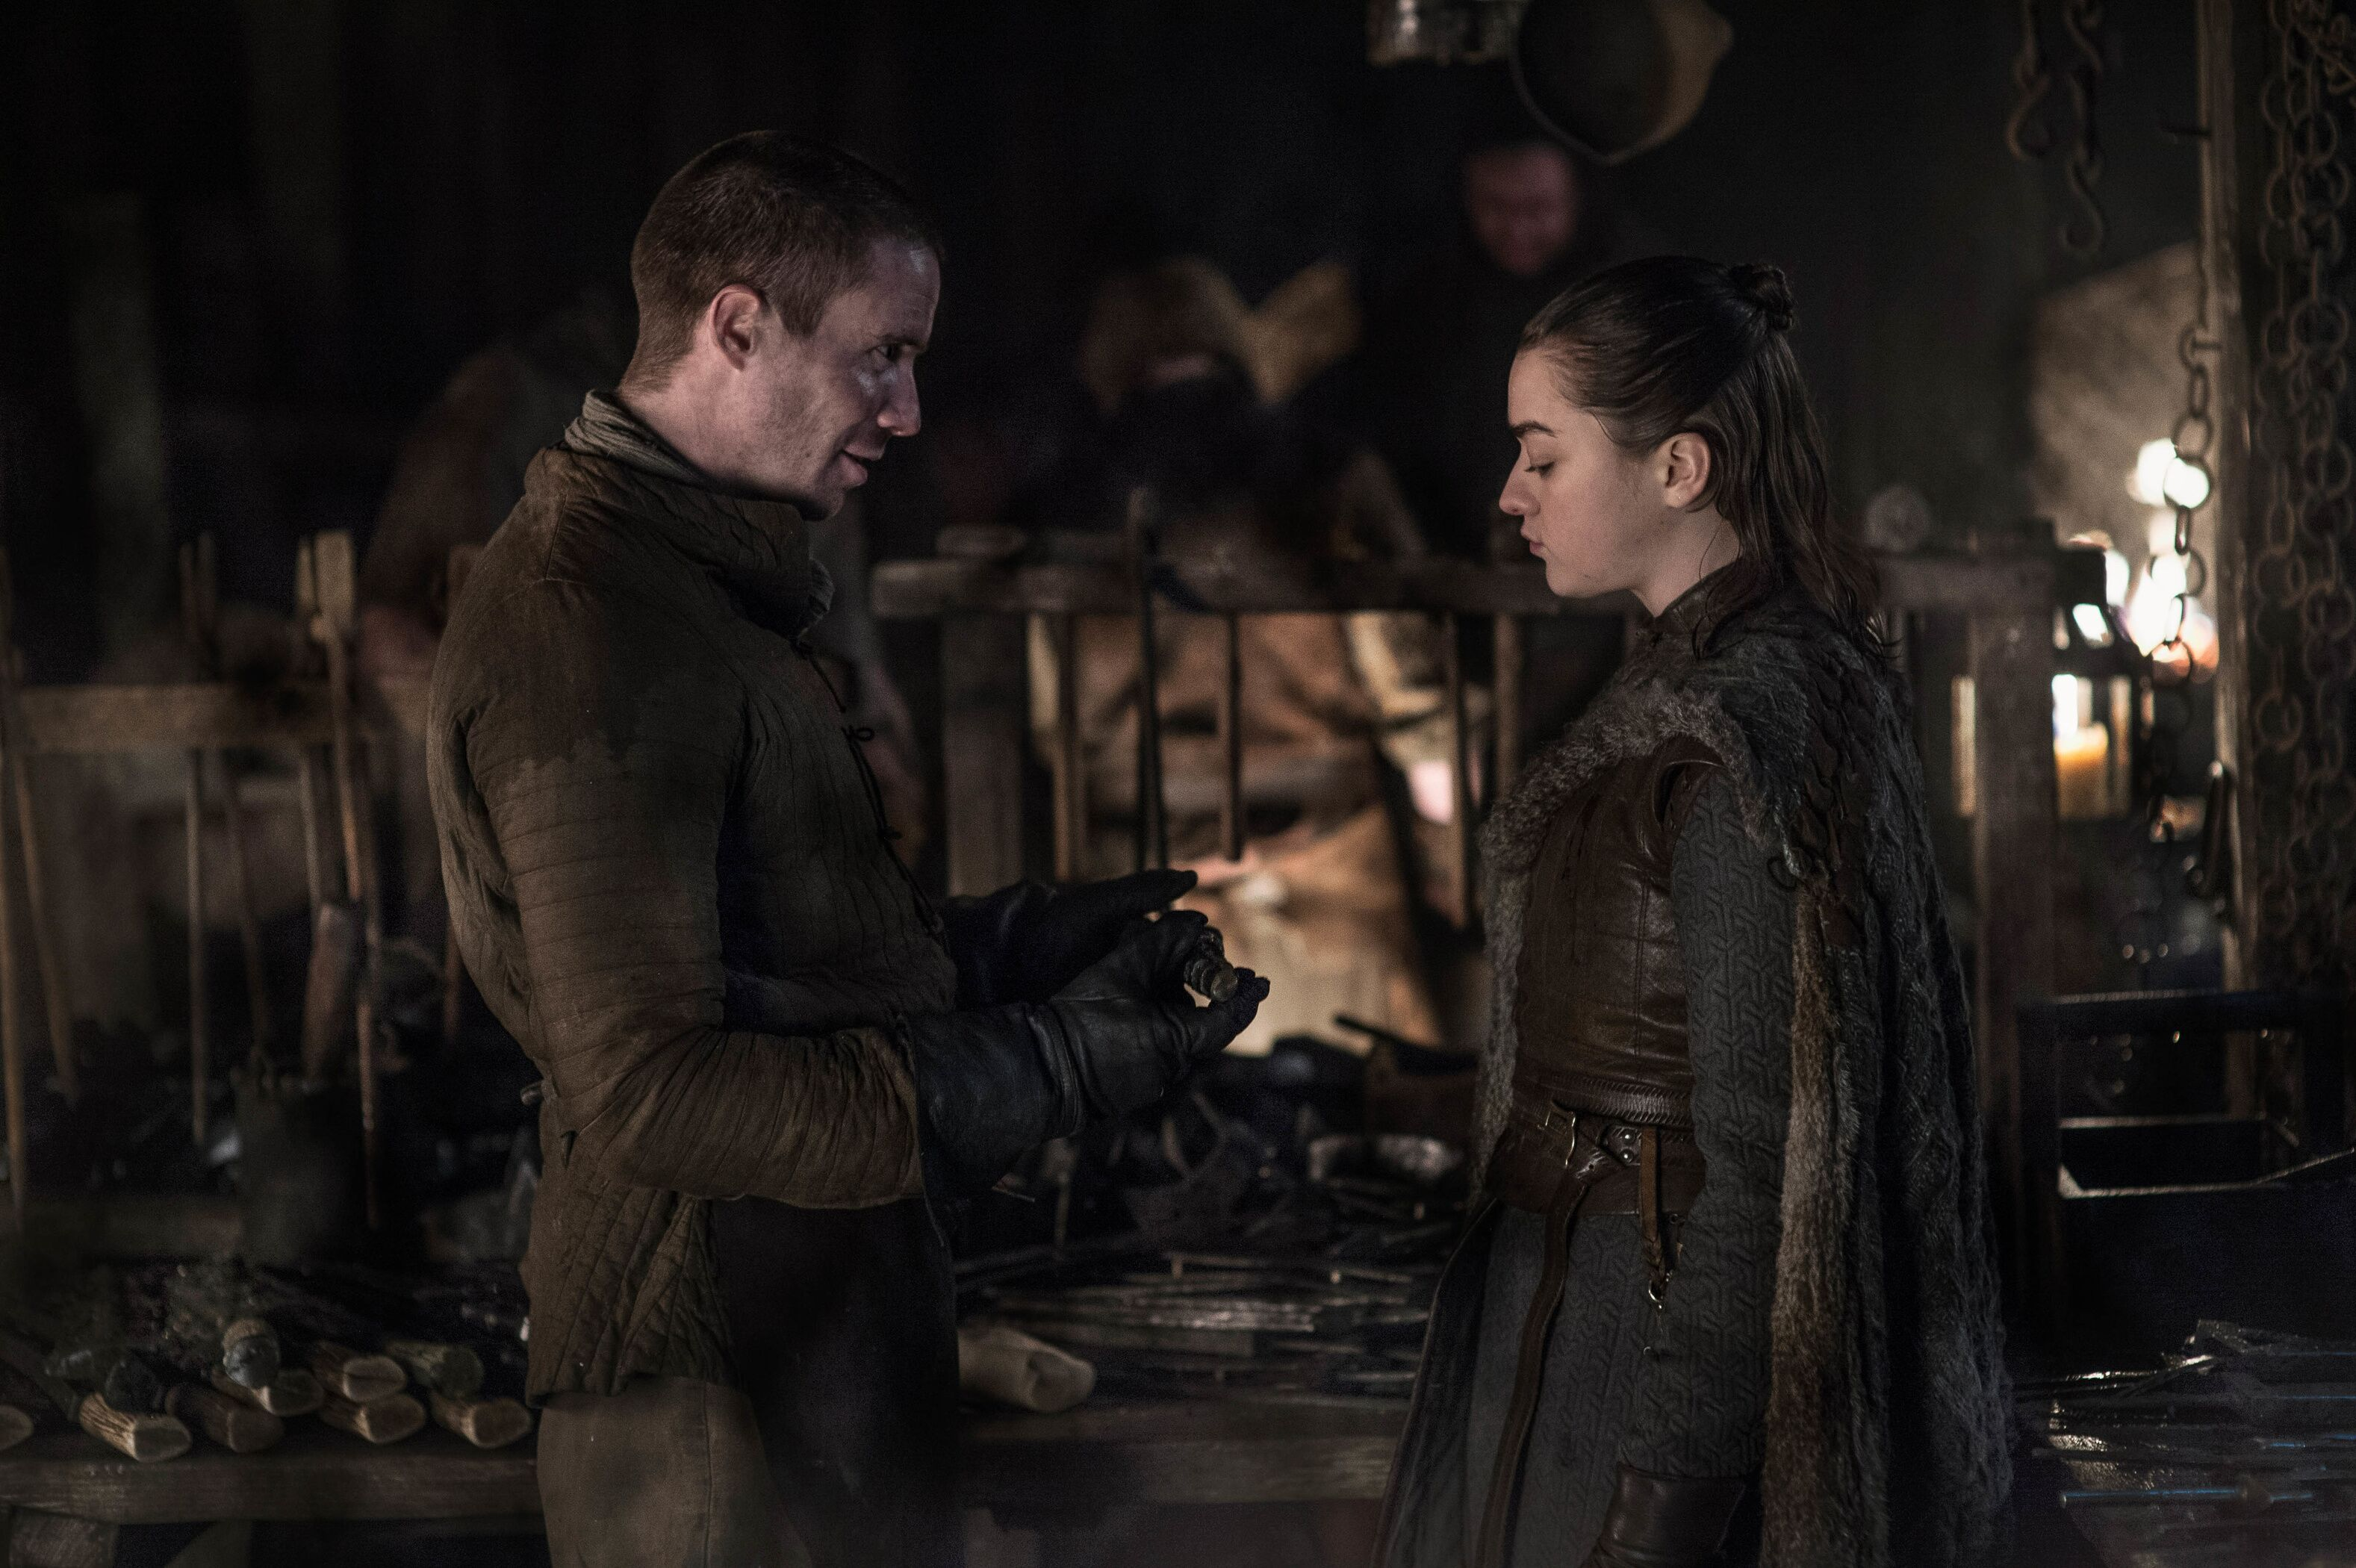 Gendry Baratheon and Arya Stark GOT Game of Thrones Season 8 Episode 1